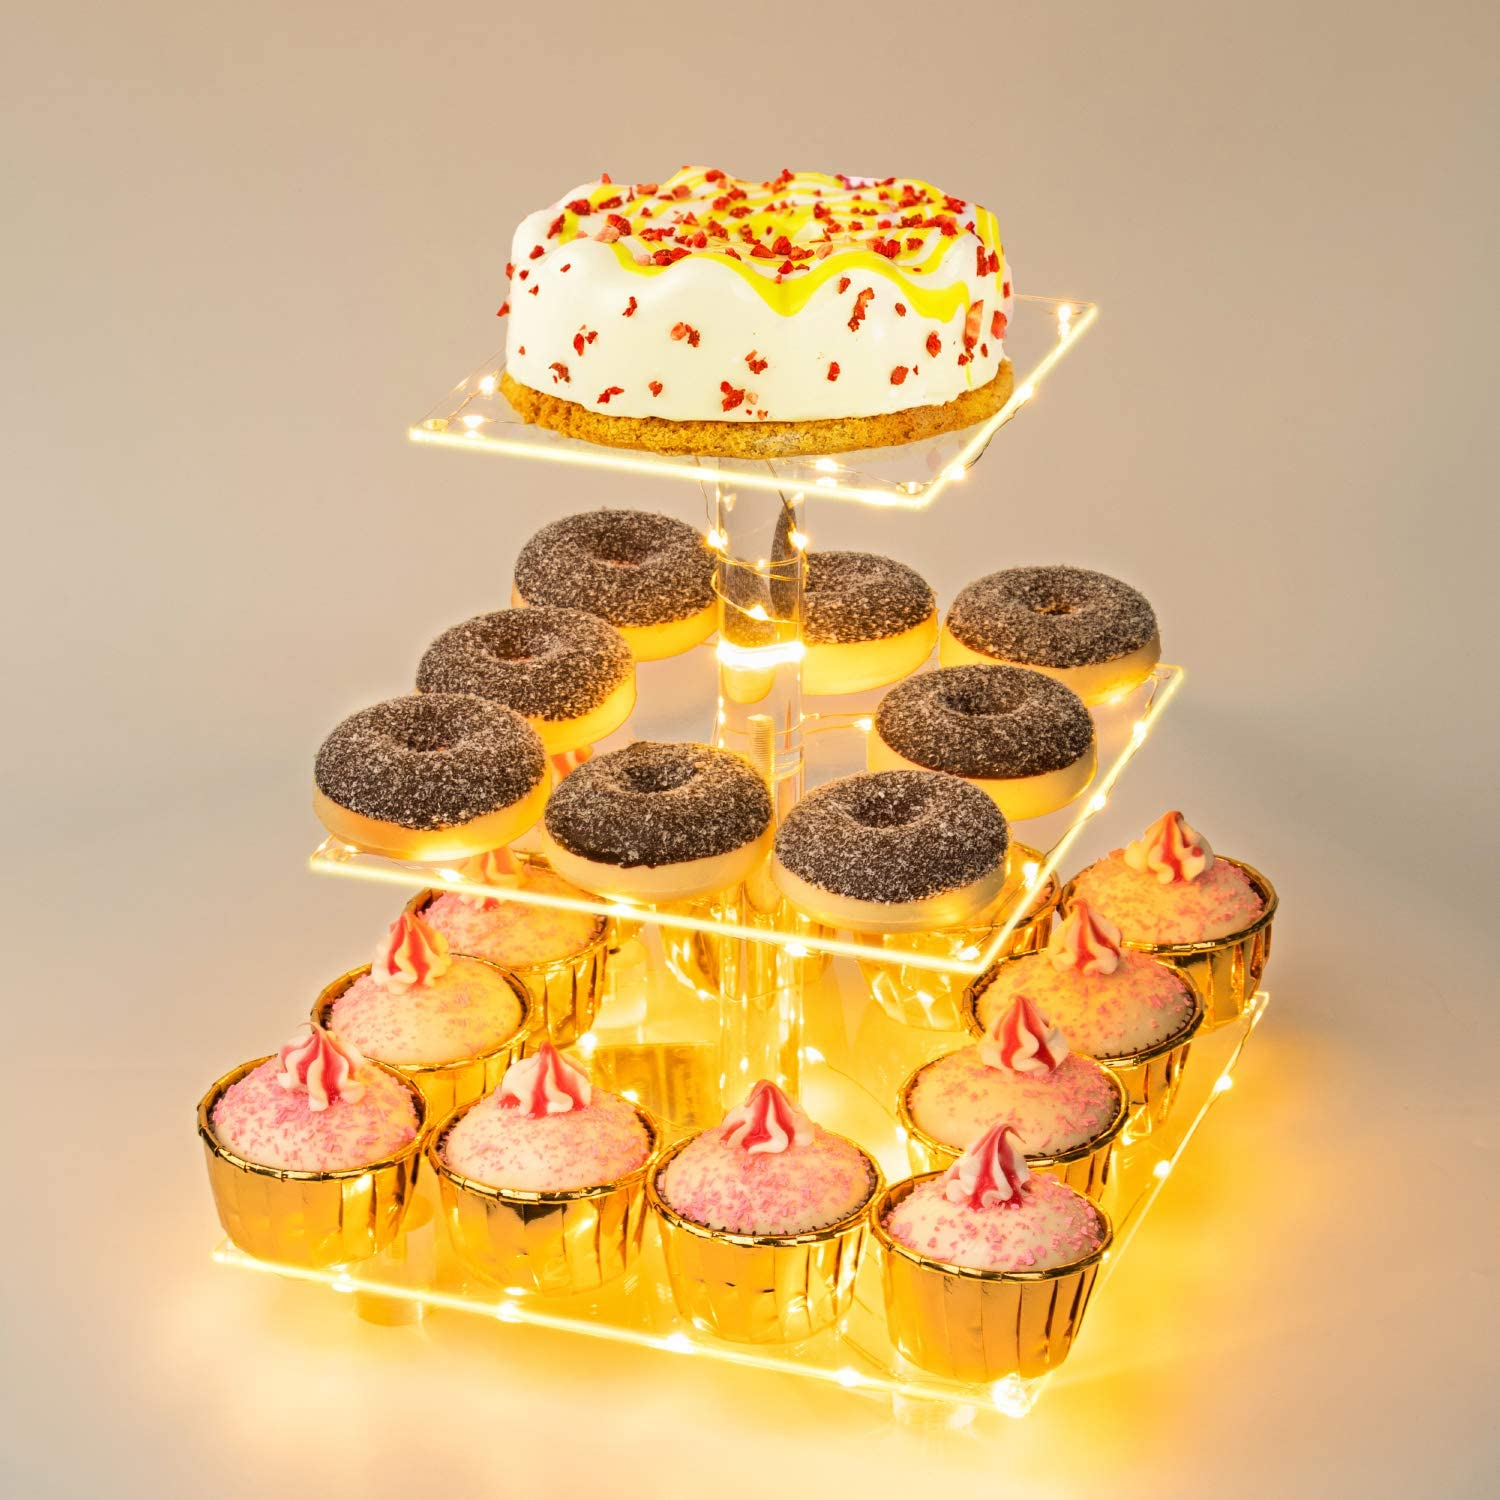 Weddingwish 3 Tier Square Acrylic Cupcake Stand-Cake Stand-Dessert Stand-Cupcake holder-Pastry serving platter-Candy Bar Party Décor- Wedding Birthday Holidays,Christmas(Yellow Light)